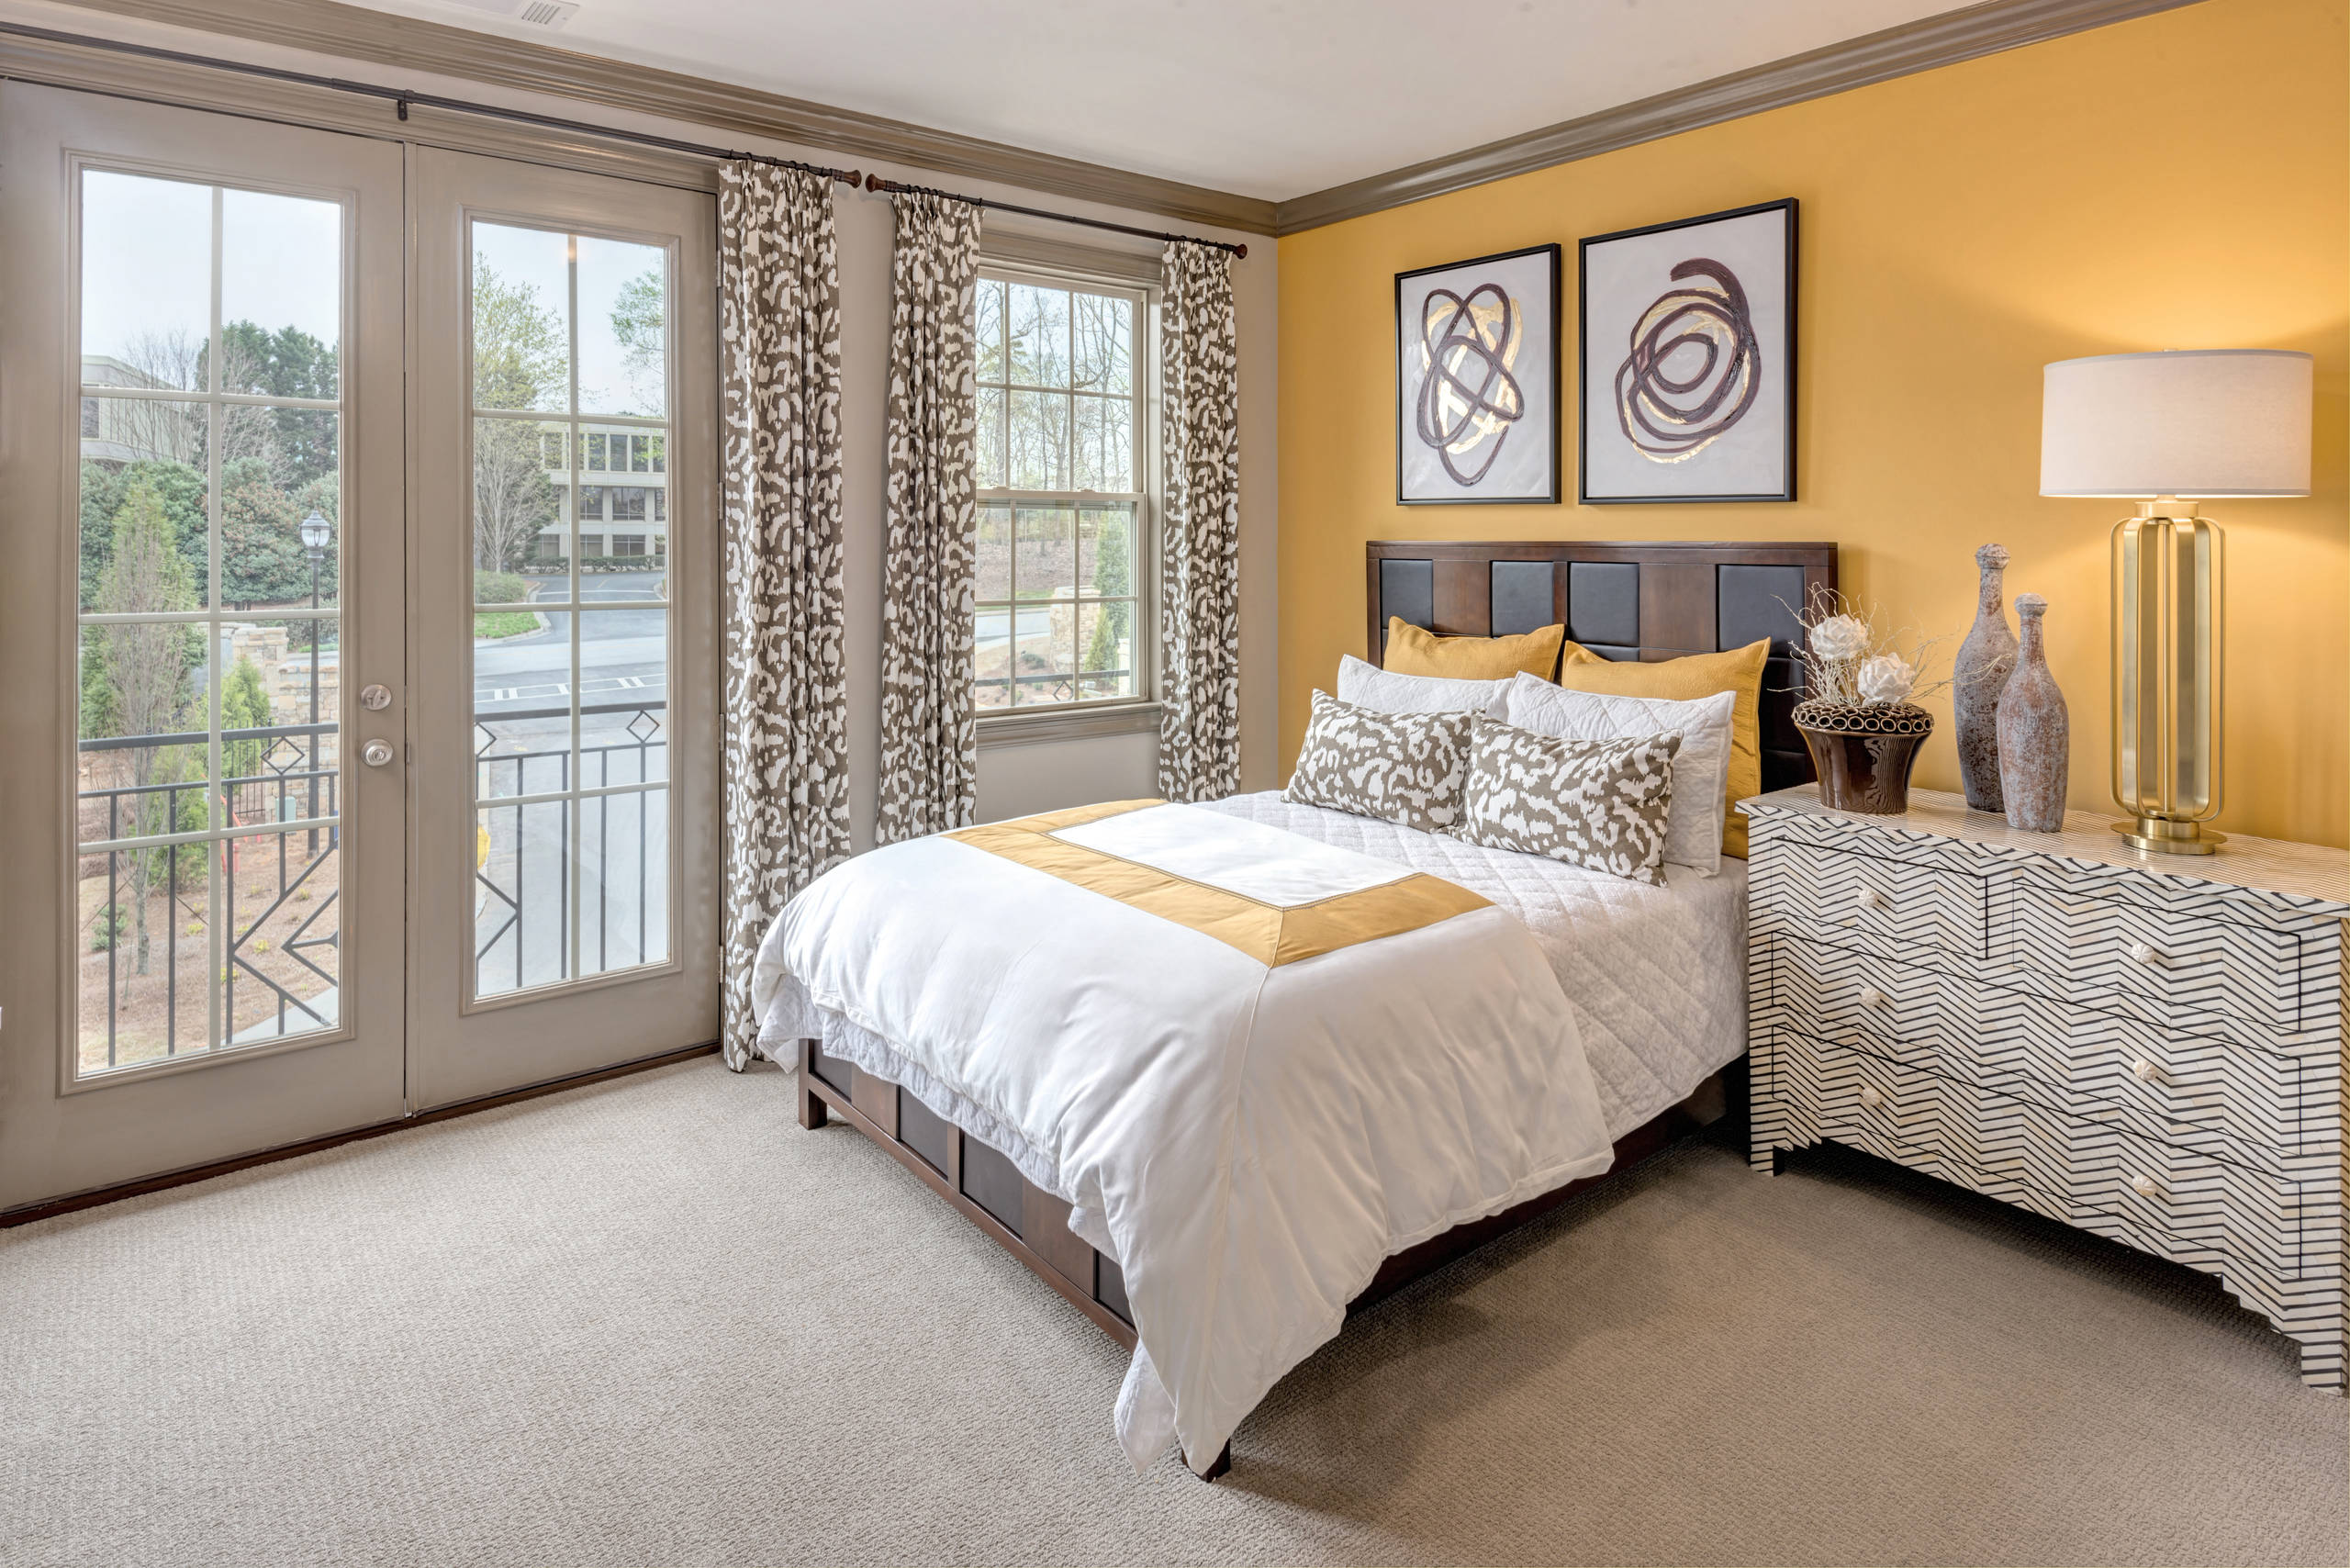 75 Beautiful Guest Bedroom With Yellow Walls Pictures Ideas February 2021 Houzz